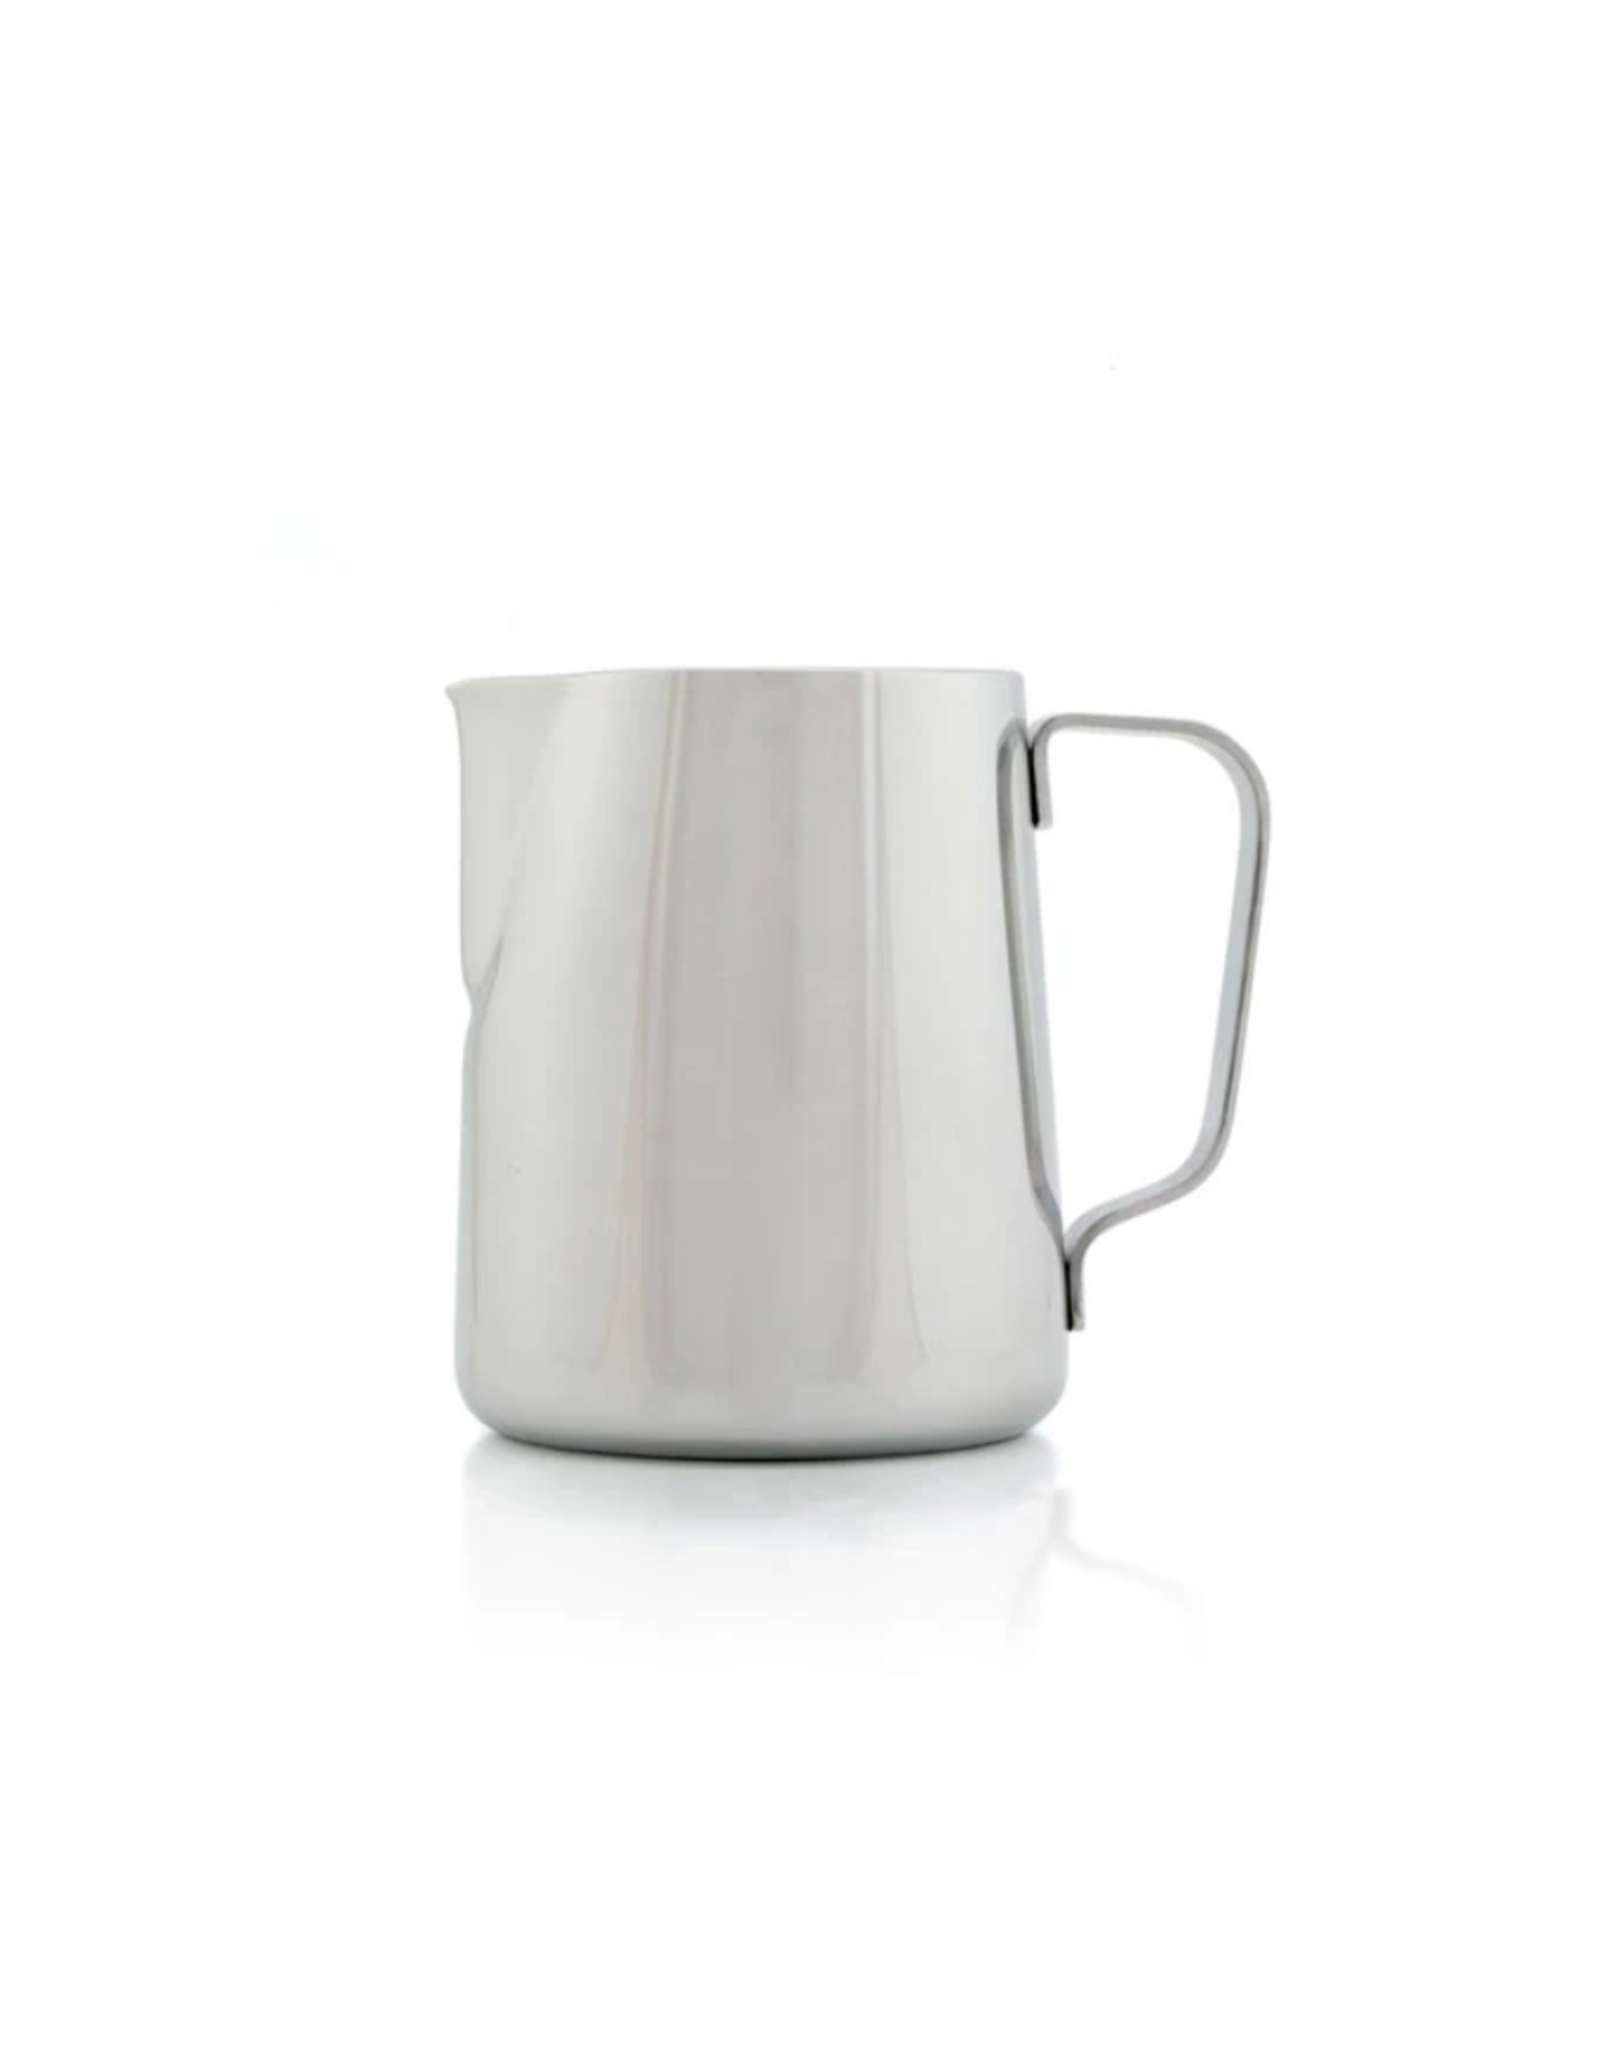 Barista Basics Barista Basics 350ml Milk Pitcher